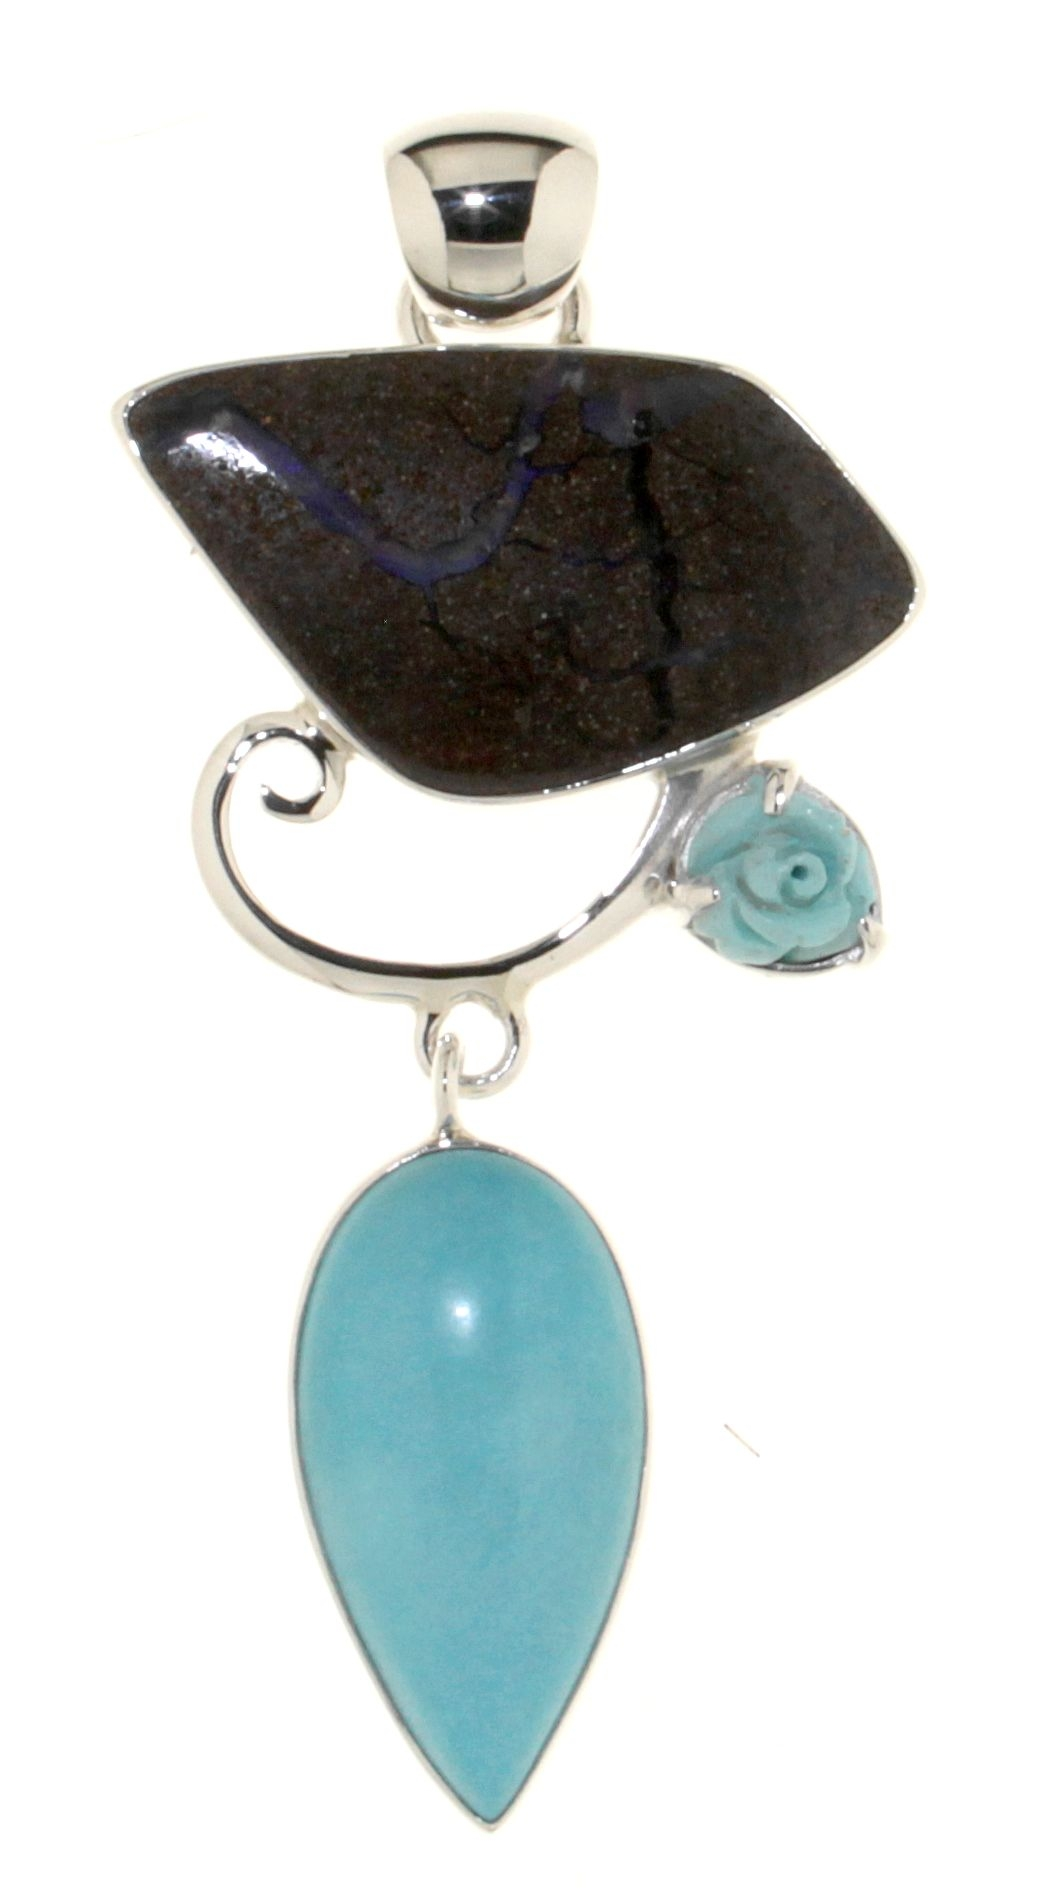 Pendant in 925 silver with Boulder Opal